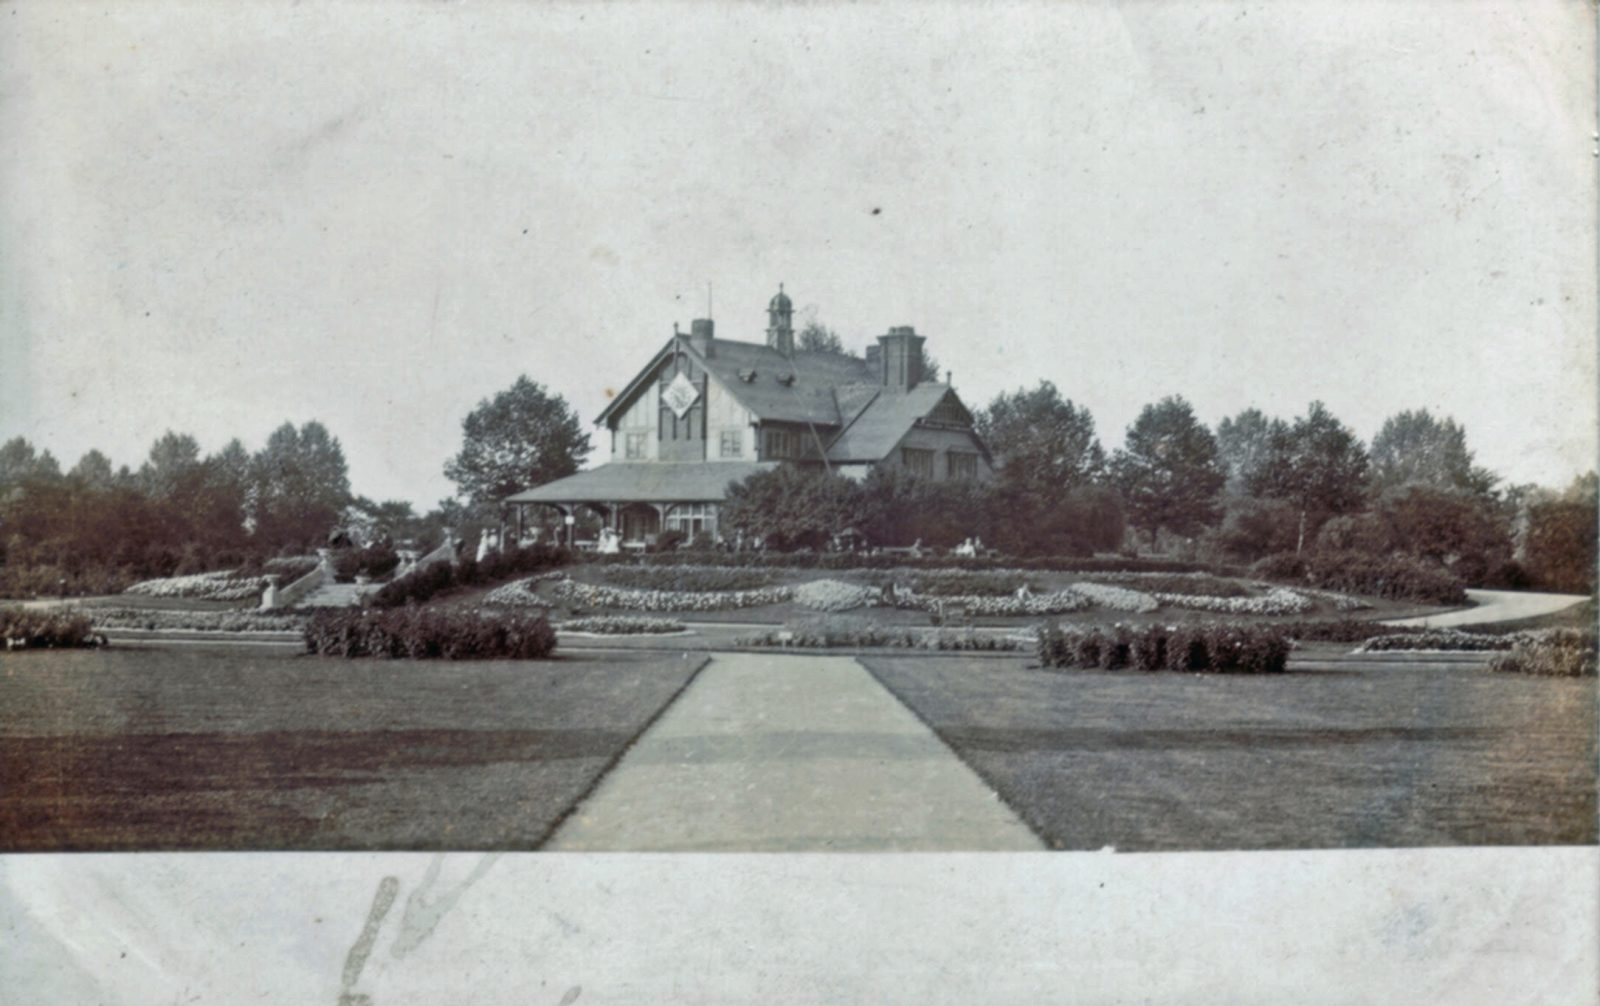 Abbey Park, Leicester. Pre 1900: The Pavilion and formal bedding. (File:1277)